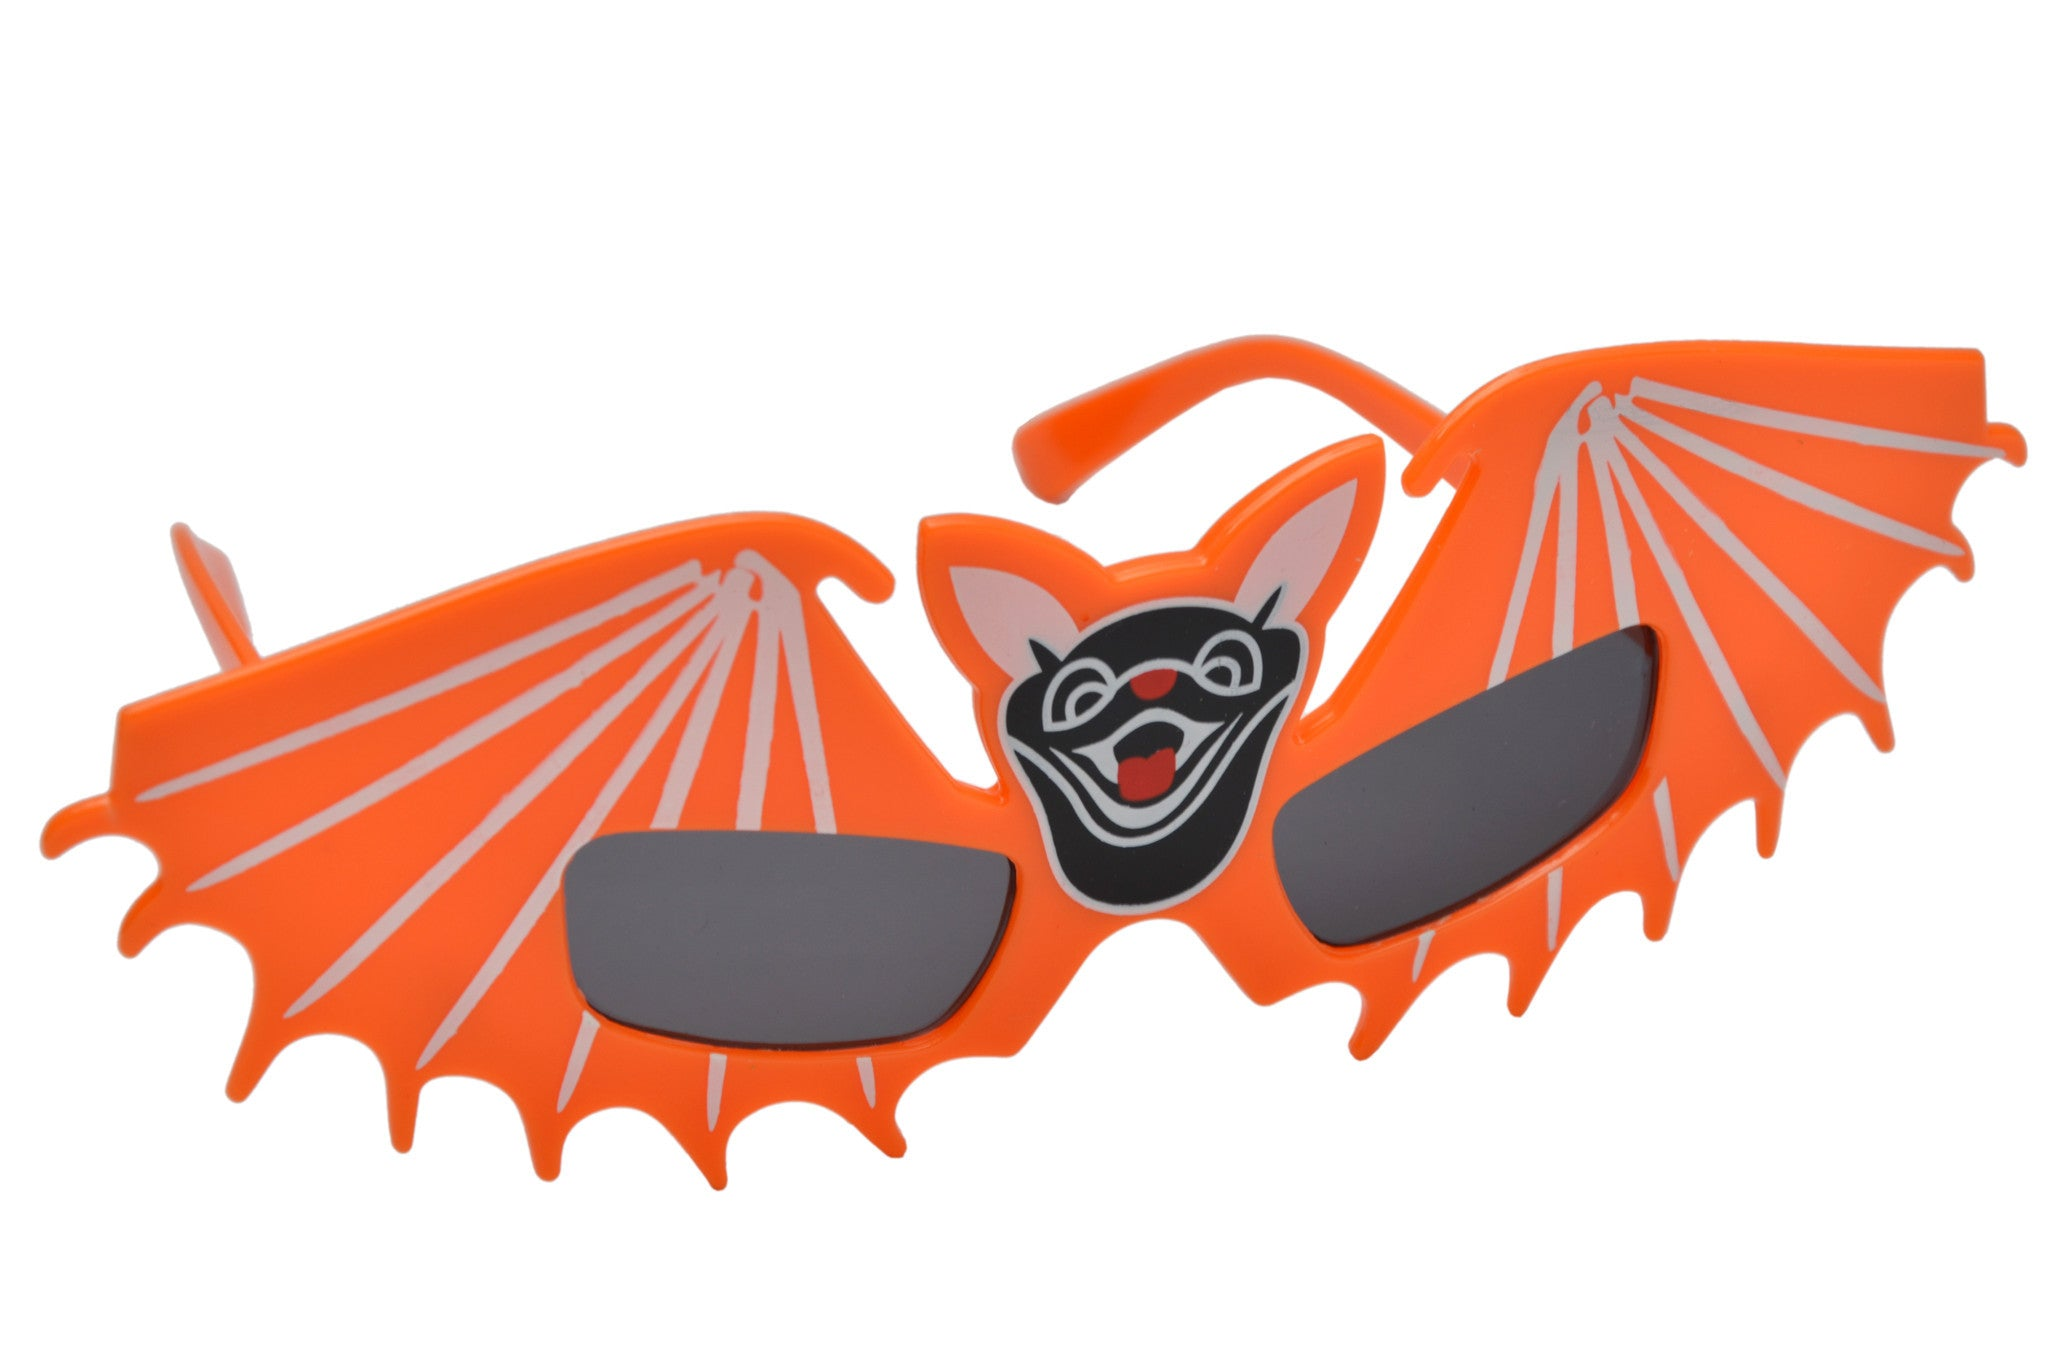 The Bat Orange Goggle